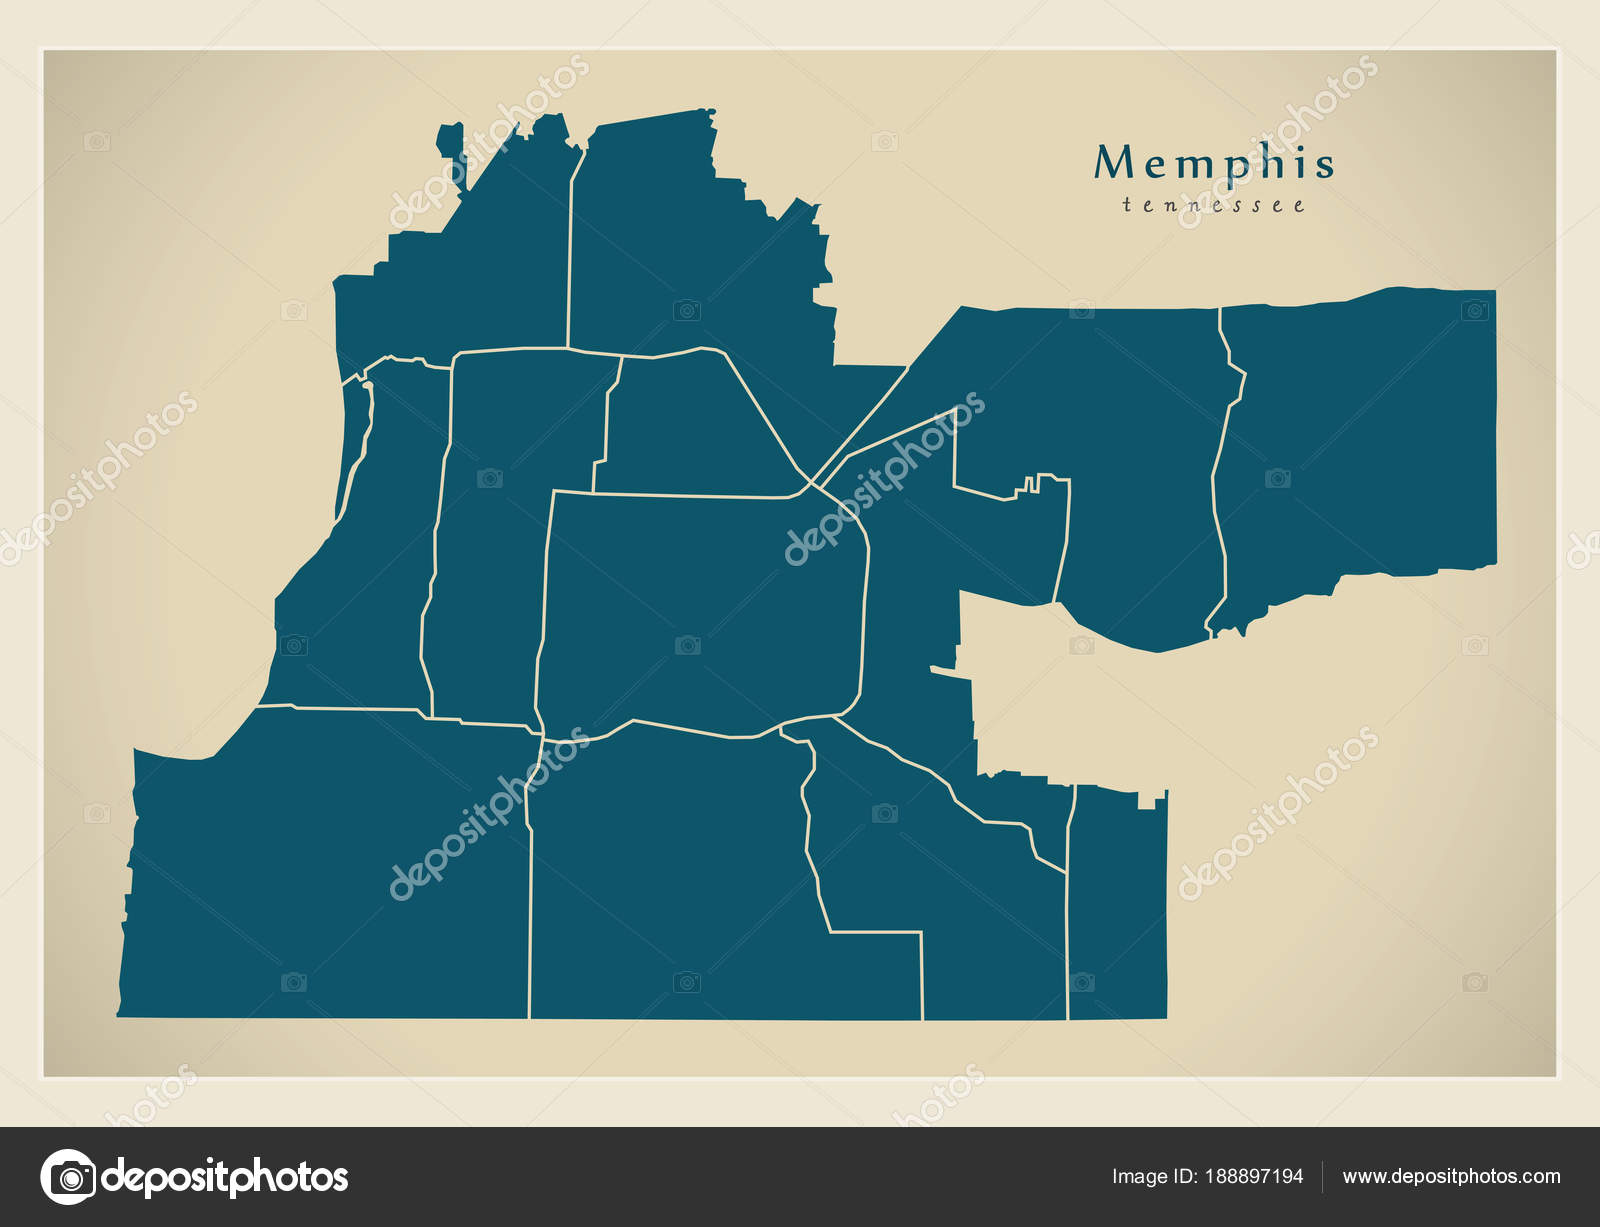 Modern City Map - Memphis Tennessee city of the USA with ...